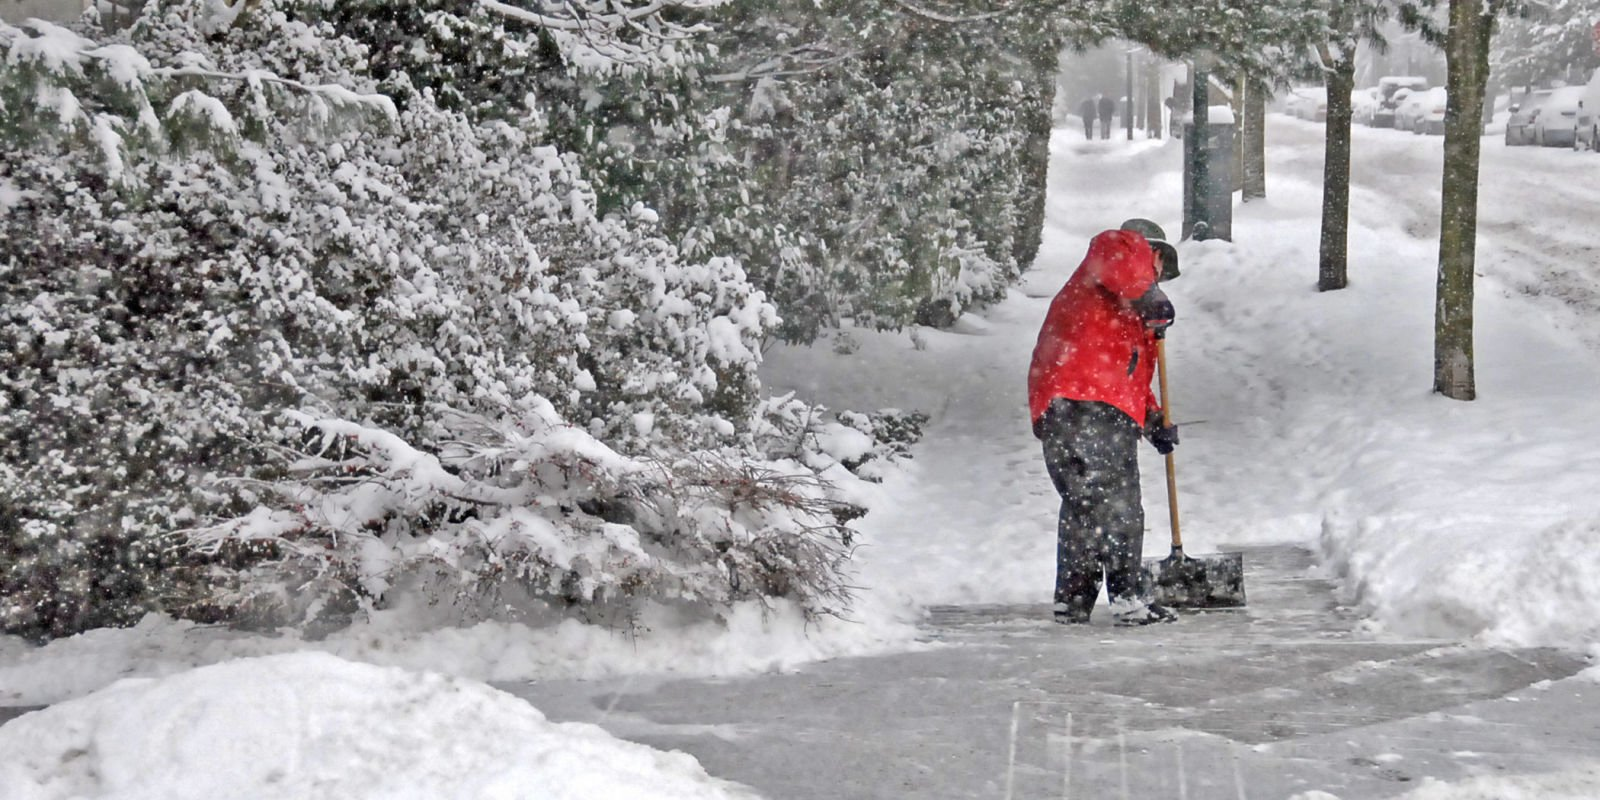 us witness brutal winter 1 - US To Witness Brutal Winter This Year